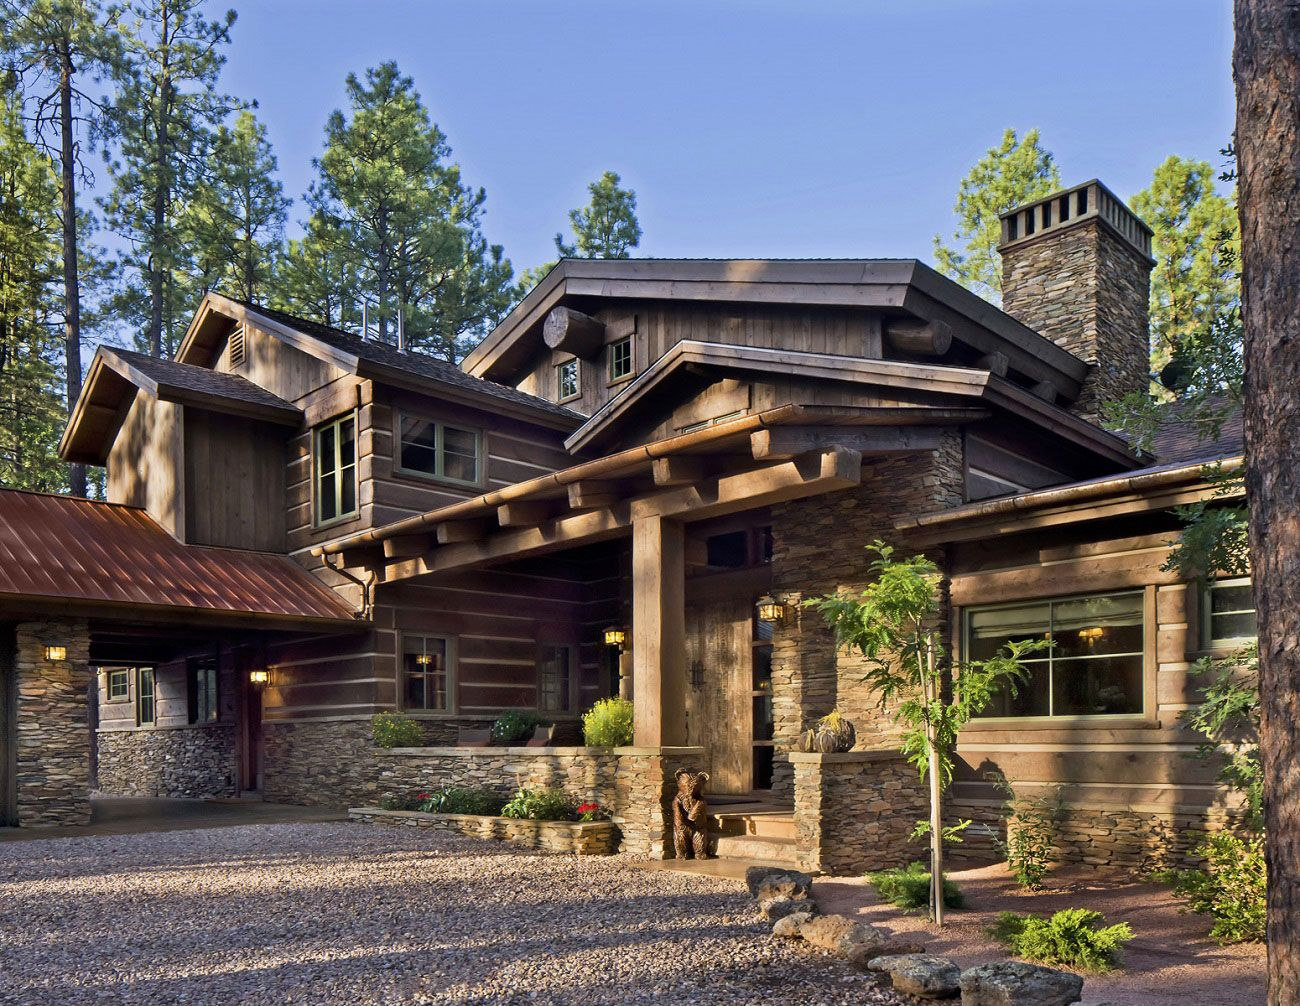 Modern Style Log Home Home Interior Contemporary Mountain Home Plans Dream And Realize It Rustic House Plans Wooden House Design Rustic Houses Exterior